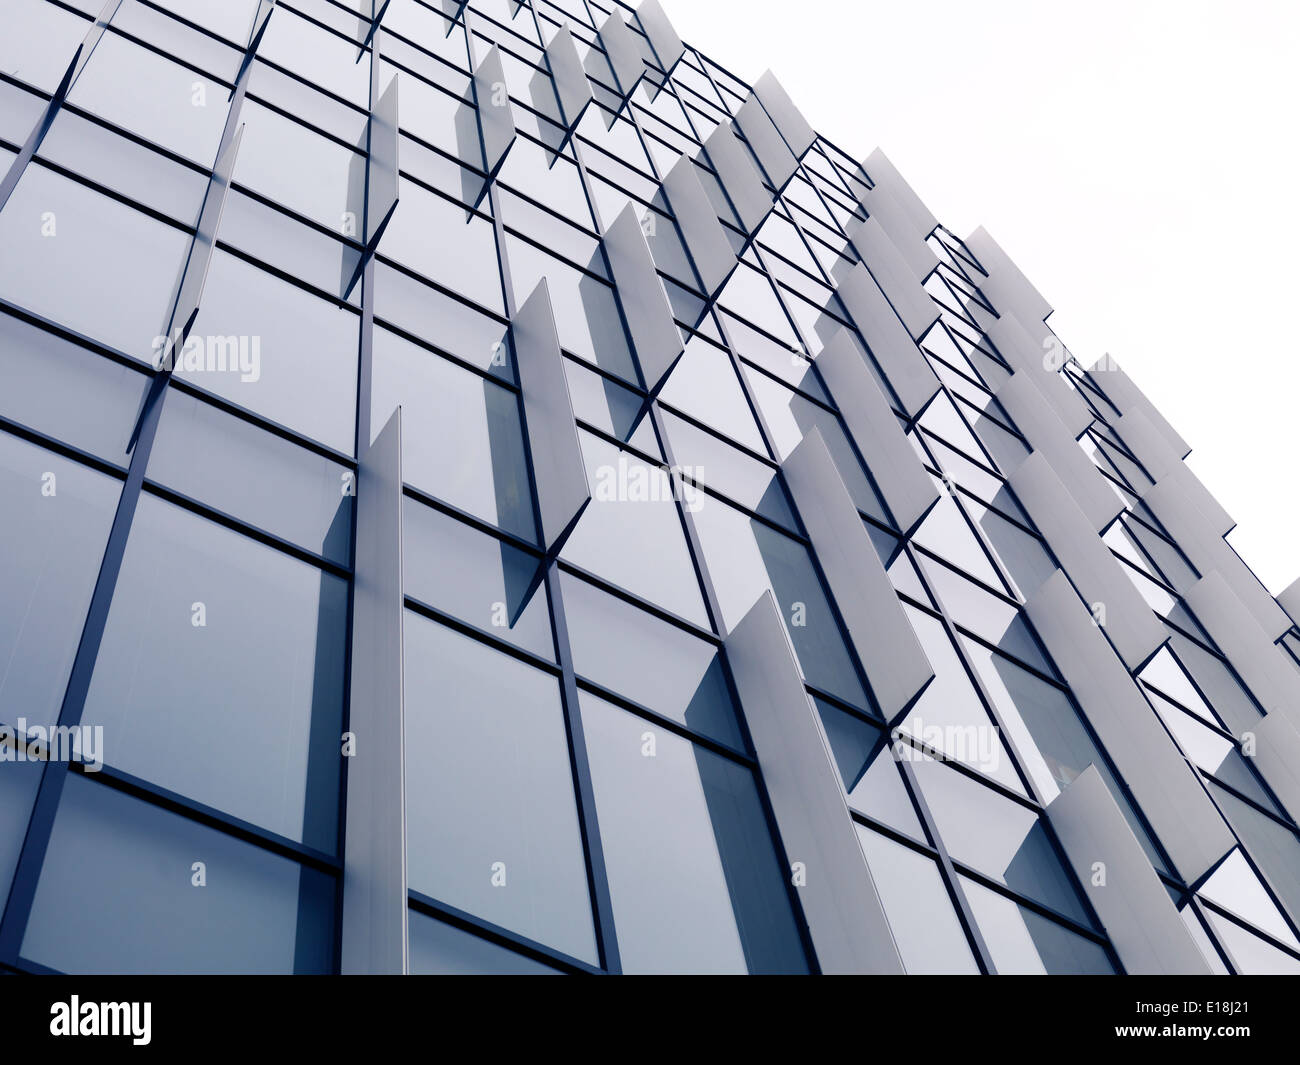 Abstract modern architecture, glass and metal building wall detail background. Tokyo, Japan. - Stock Image